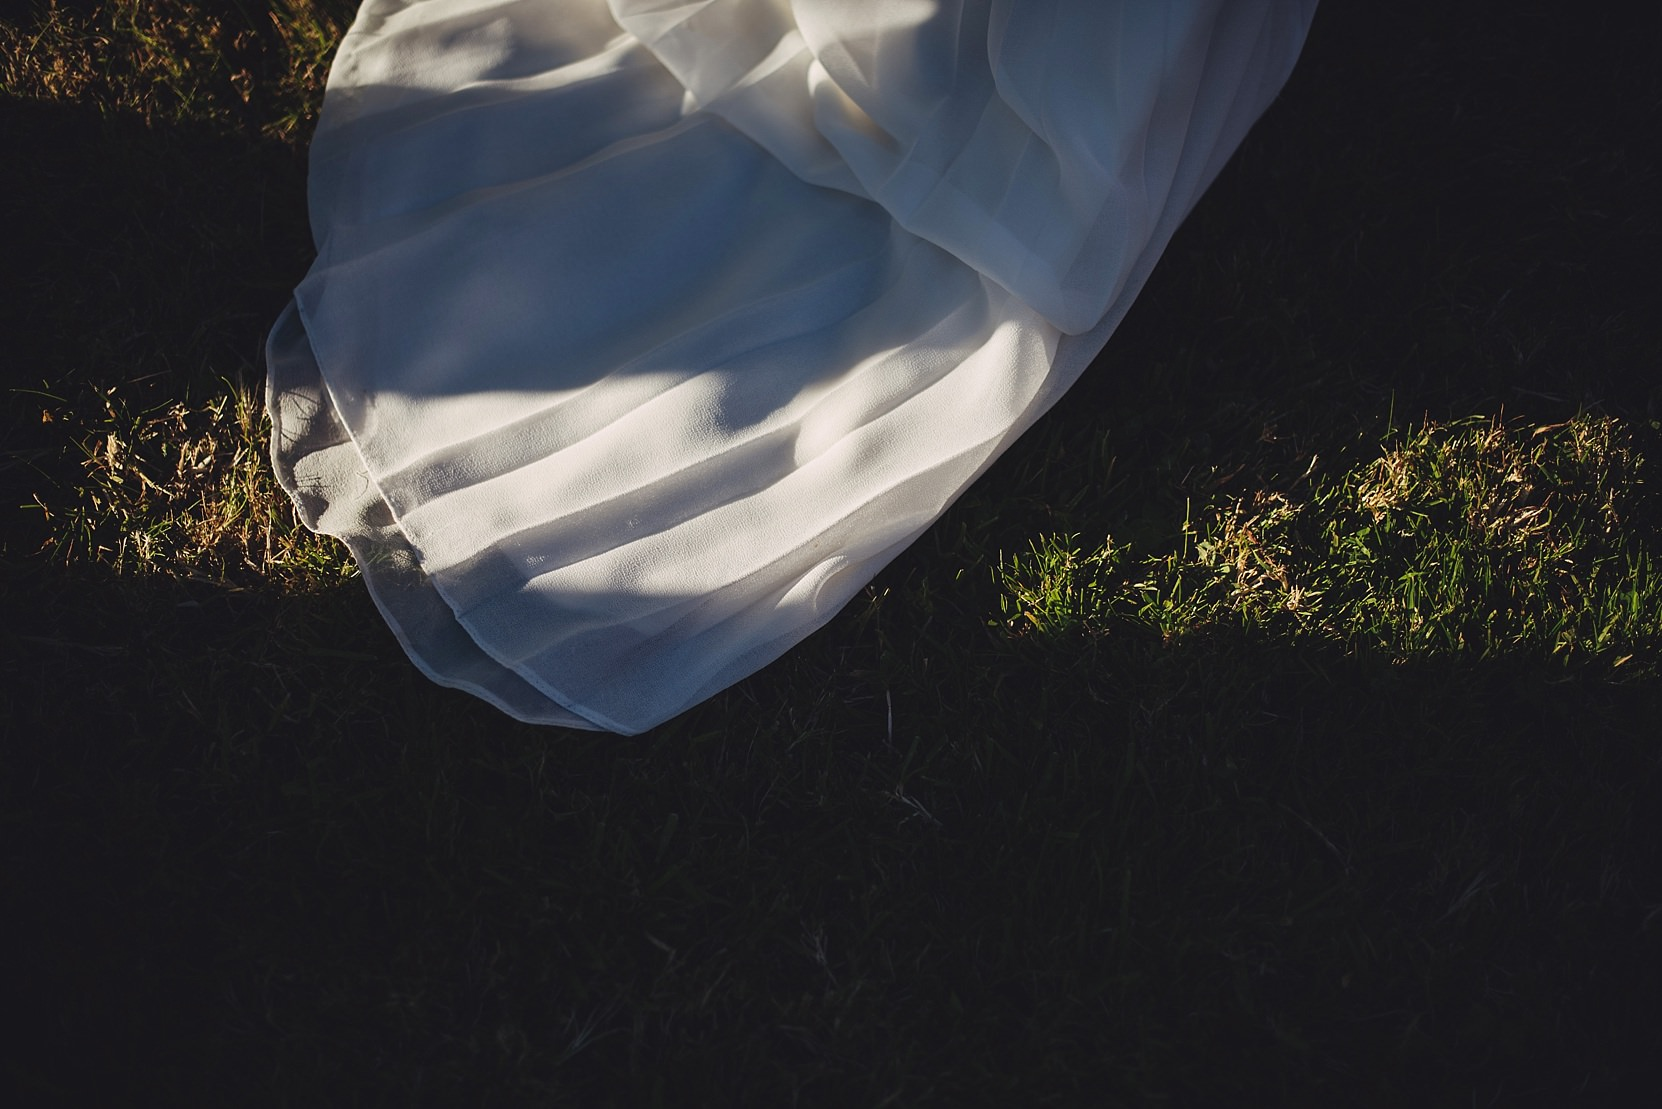 The brides dress in great light at a wedding